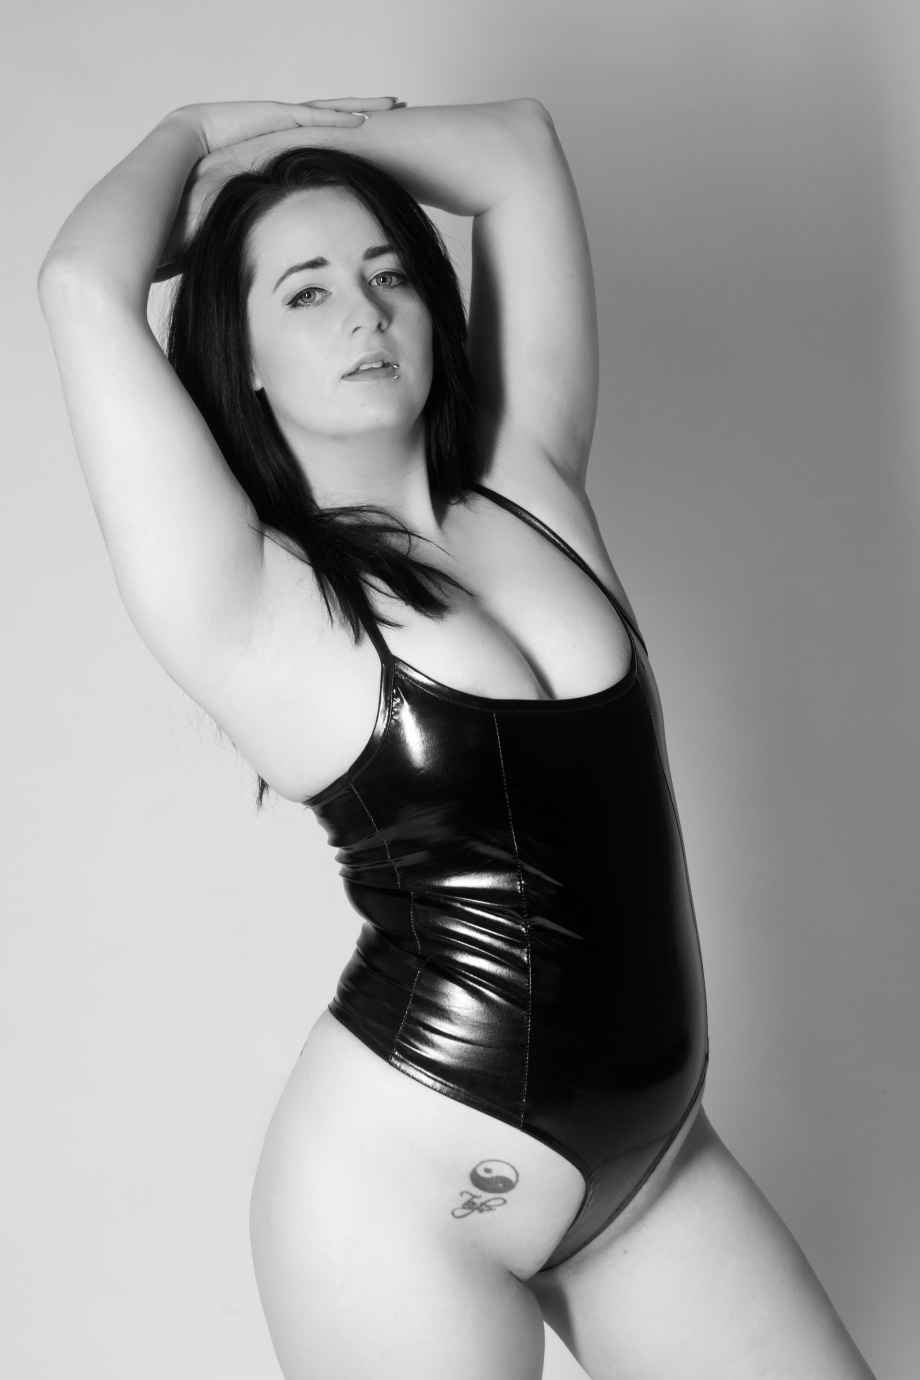 cork, glamour, photoshoot, studio, ireland, lingerie, black and white